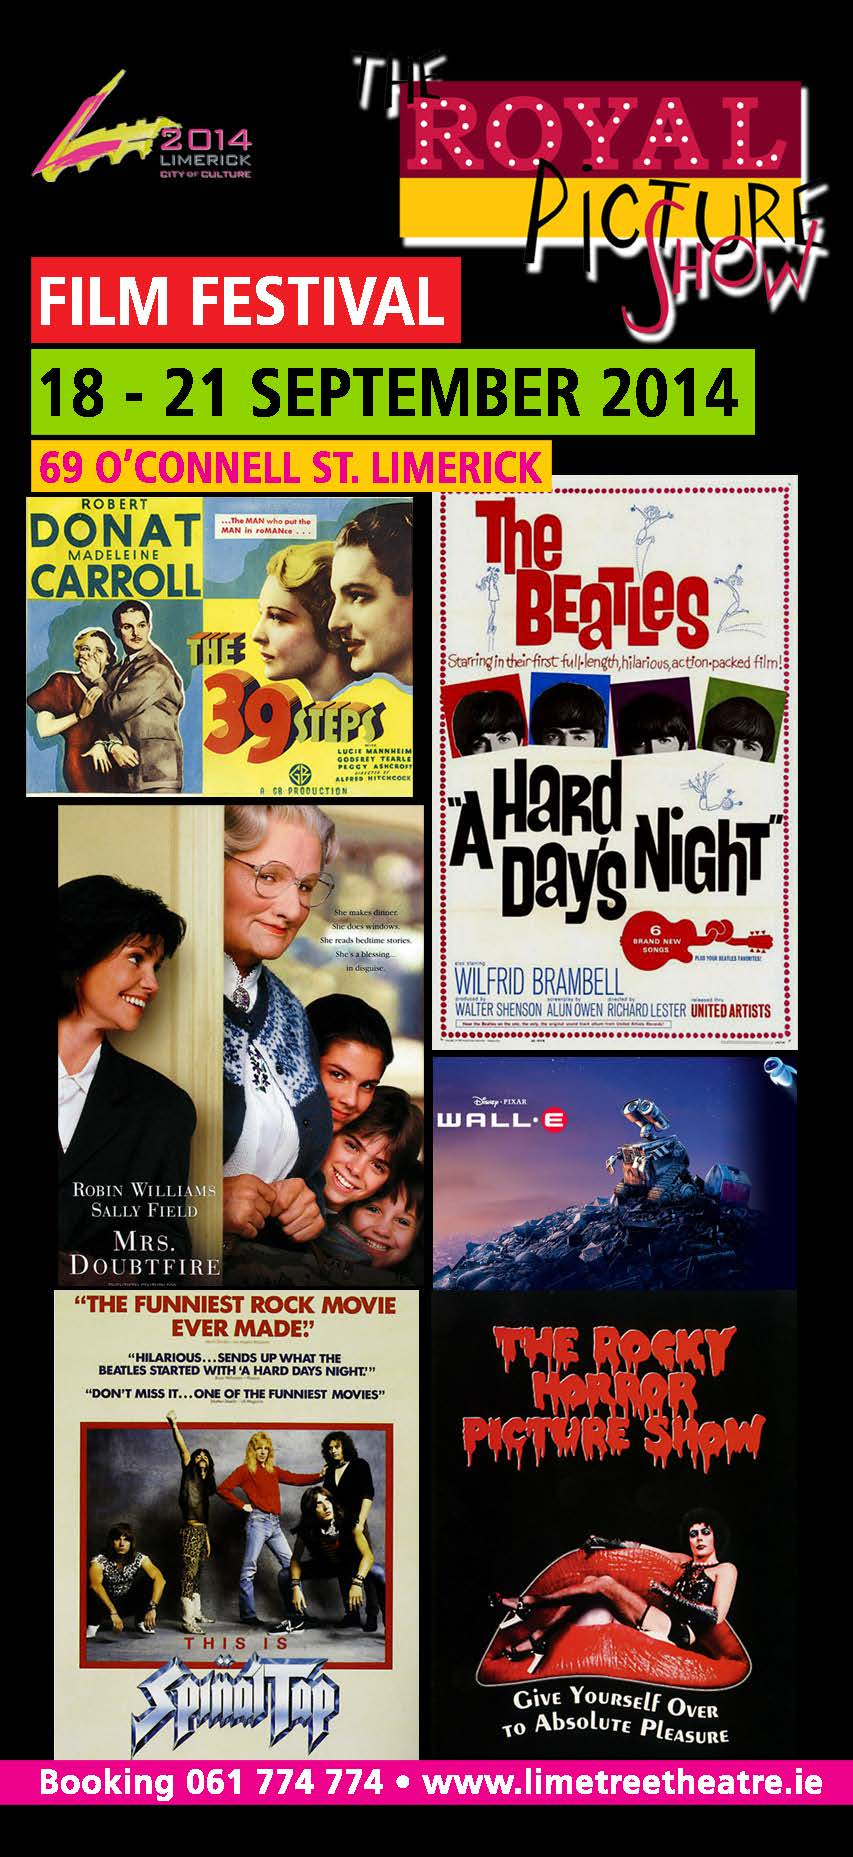 The Third Royal Picture Show